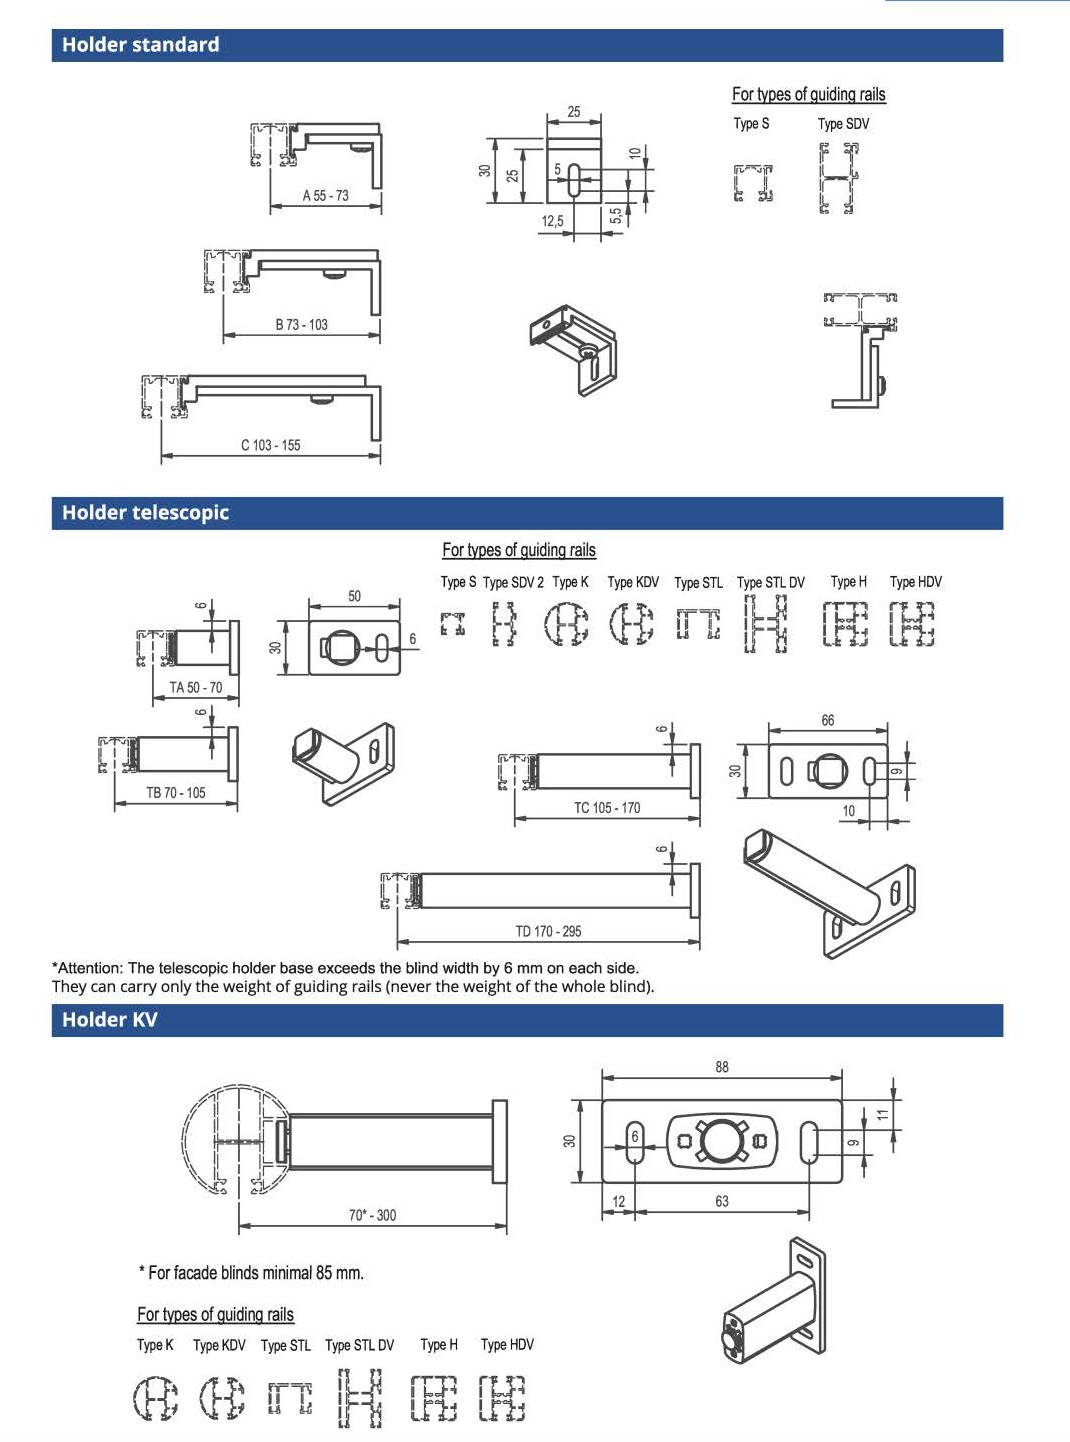 Types of guiding rail holders